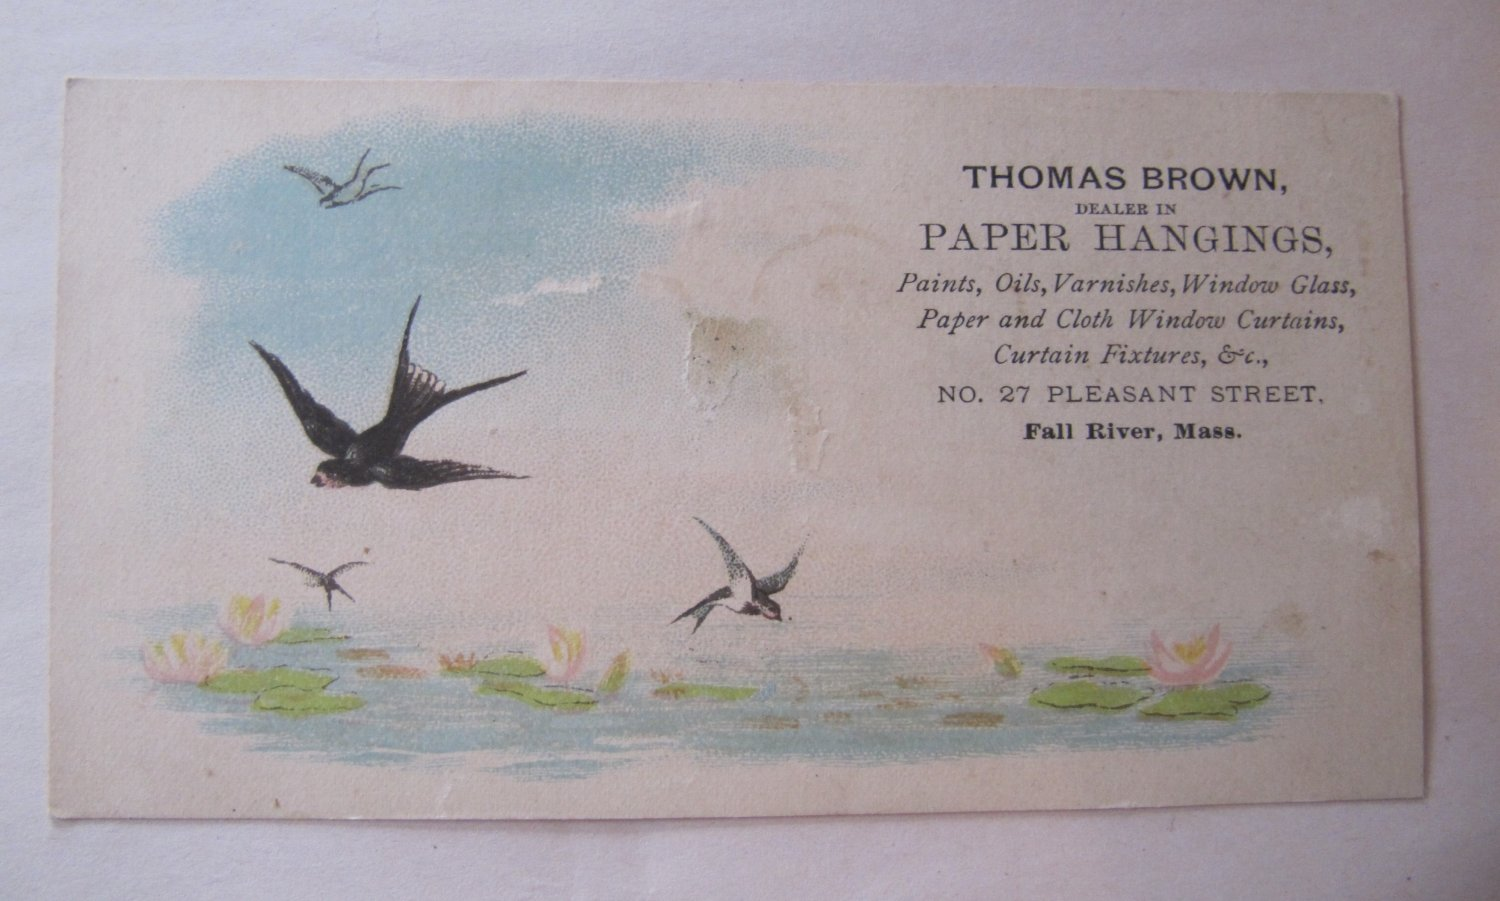 Rare c 1880s Antique Victorian Business Trade Card Thomas Brown Paper Hangings Fall River Birds